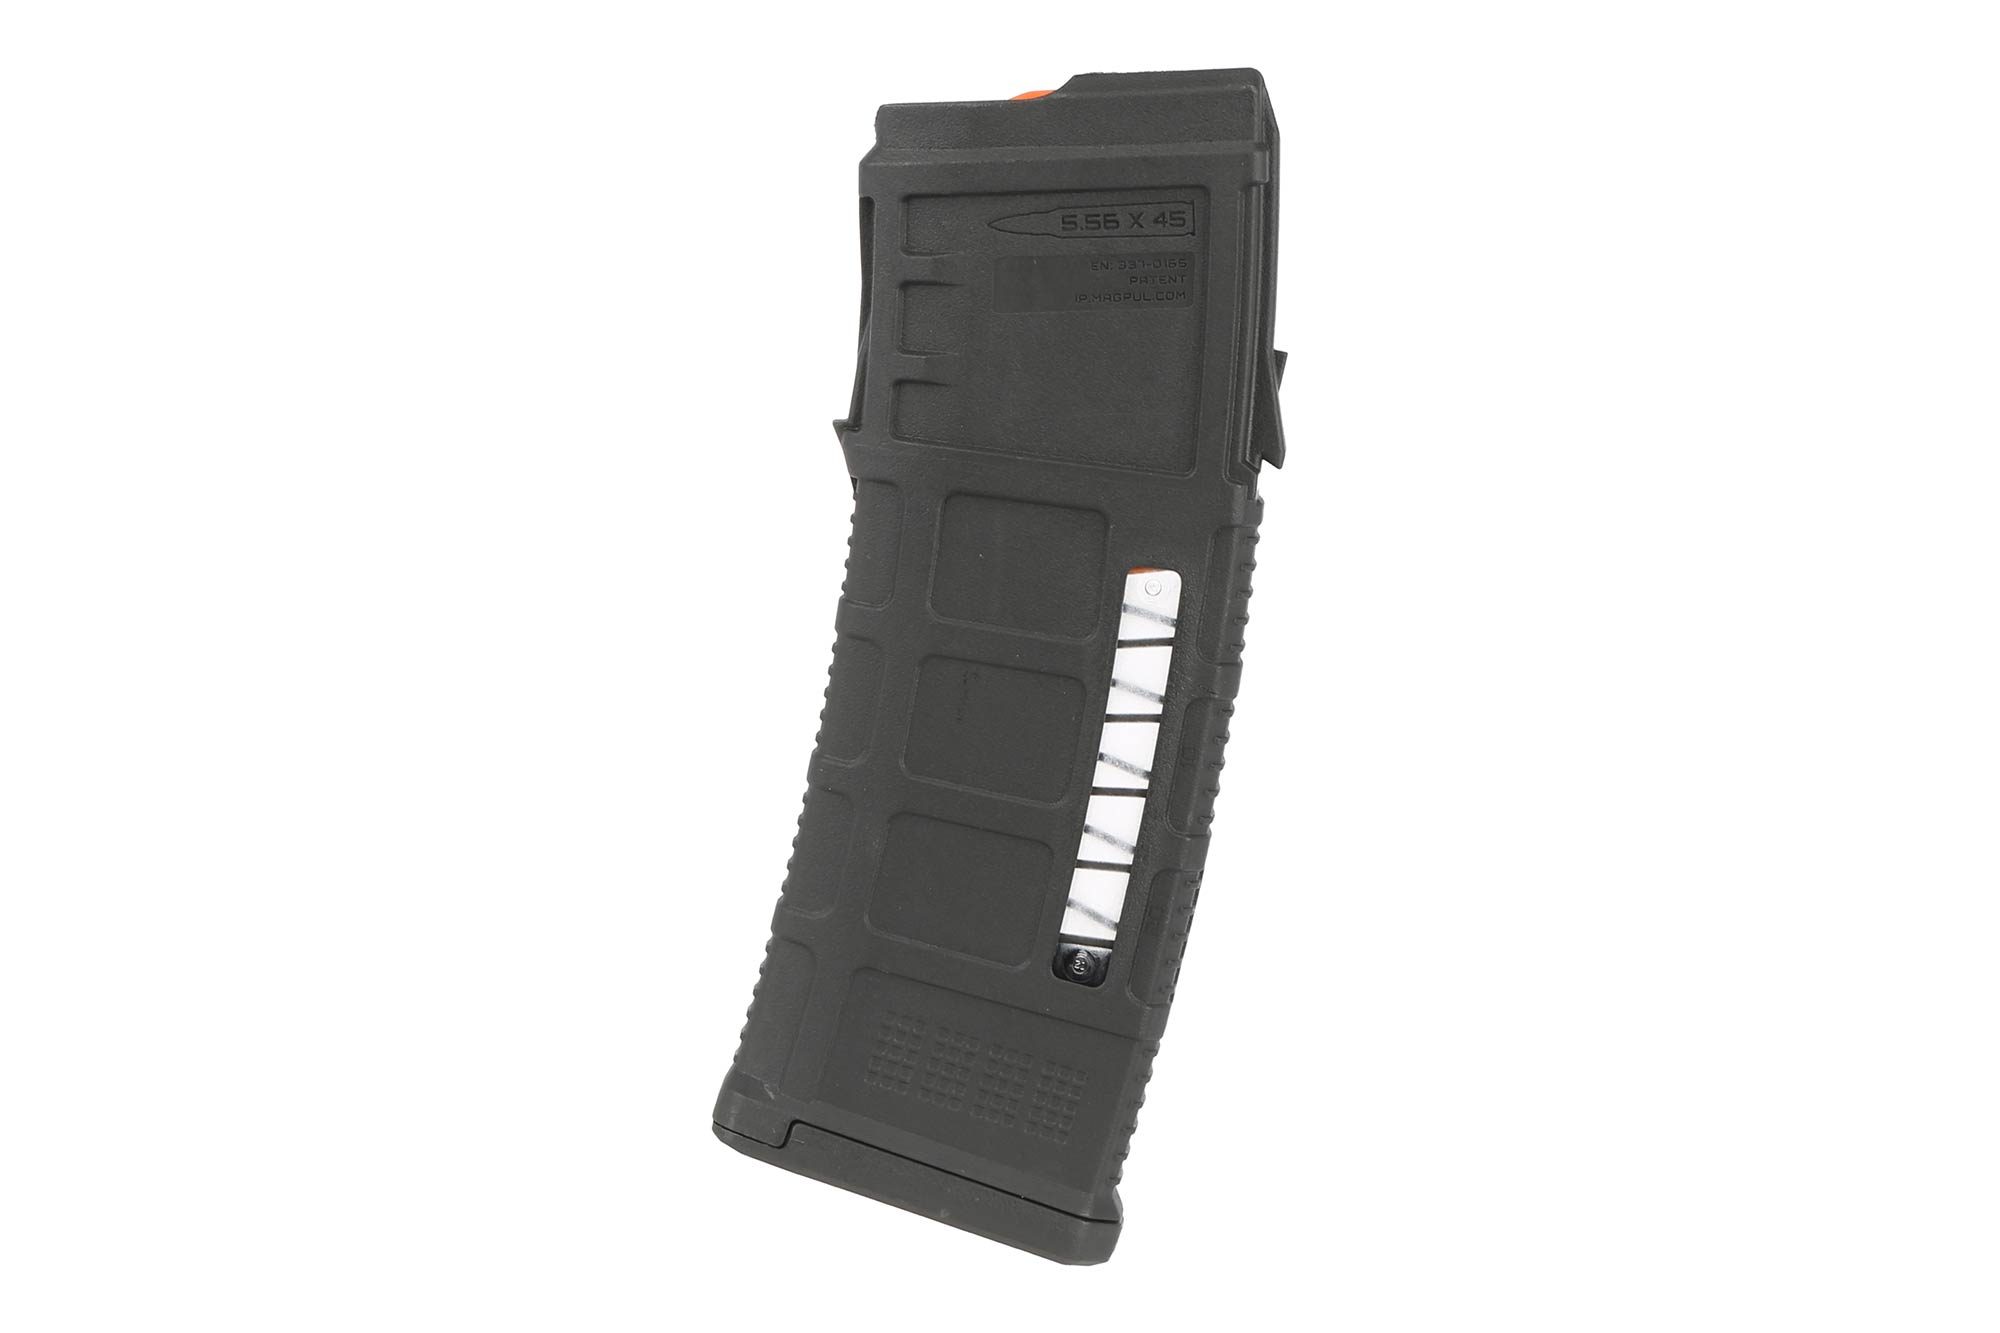 The Magpul PMAG AUS Steyr AUG 5.56 magazine holds 30 rounds